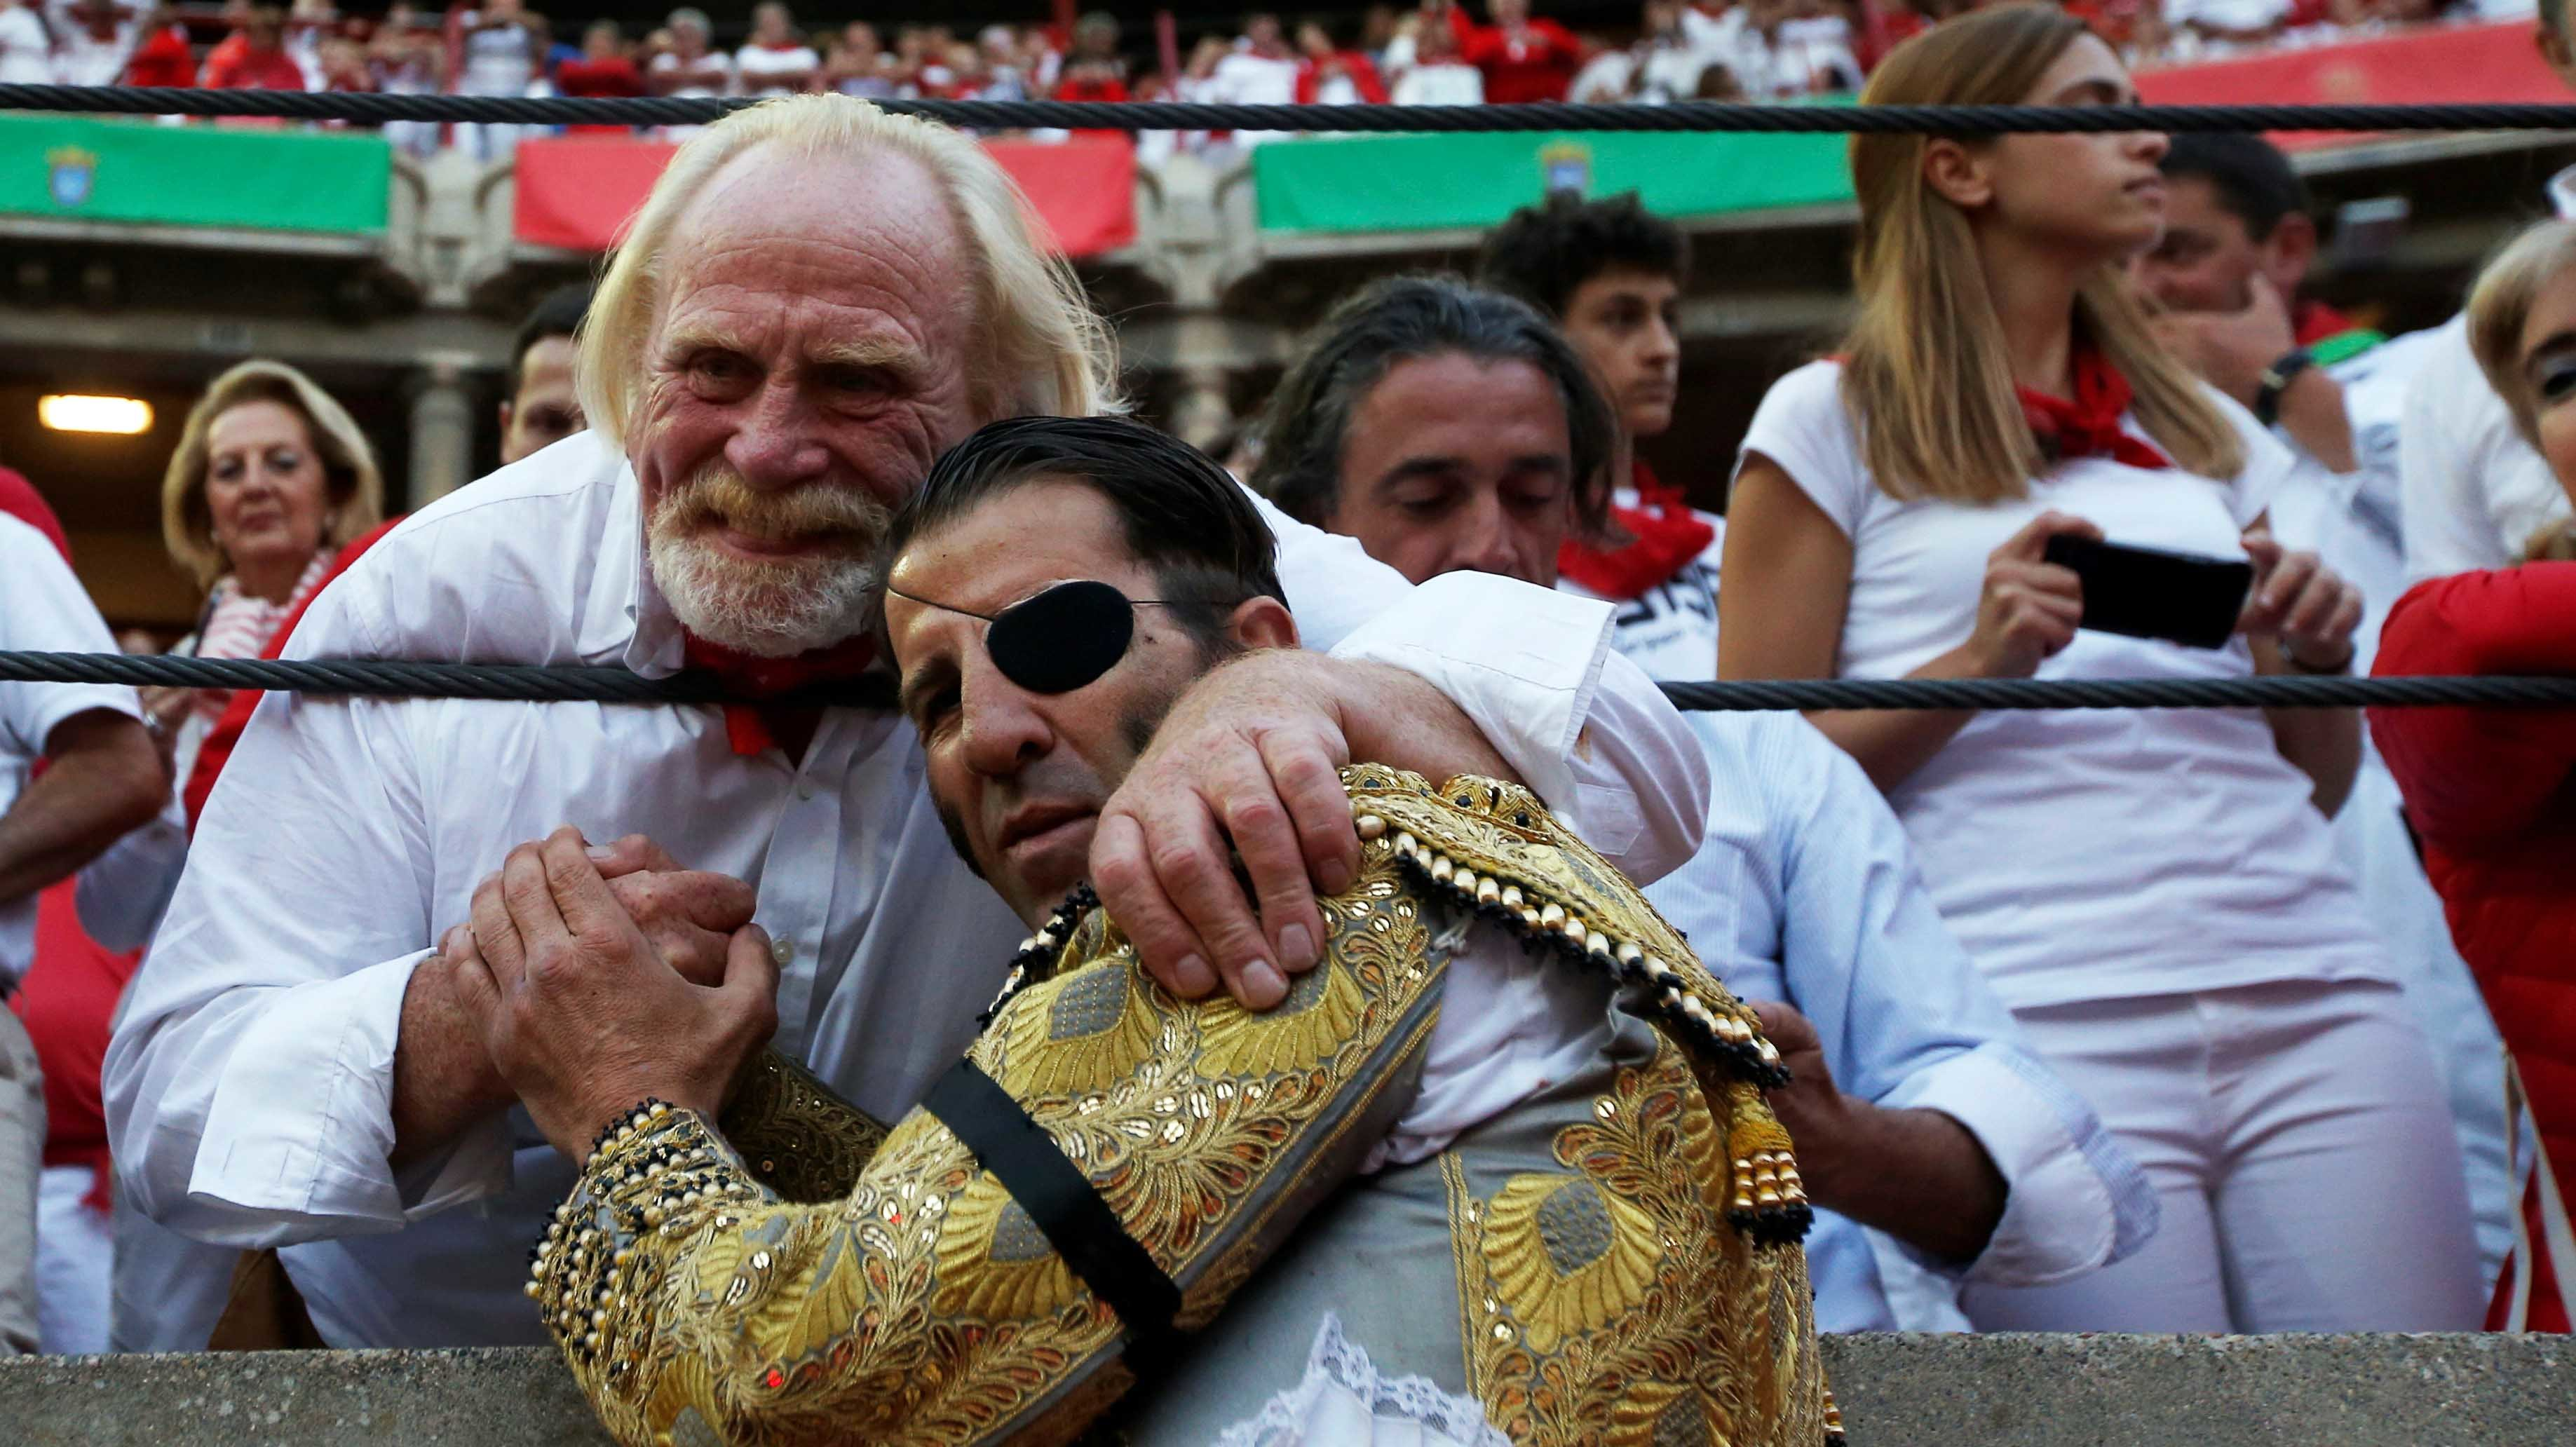 Spanish bullfighter Juan Jose Padilla poses for a picture with actor James Cosmo at the end of a bullfight at the San Fermin Festival in Pamplona, northern Spain, July 12, 2016. REUTERS/Susana VeraCODE: X01622